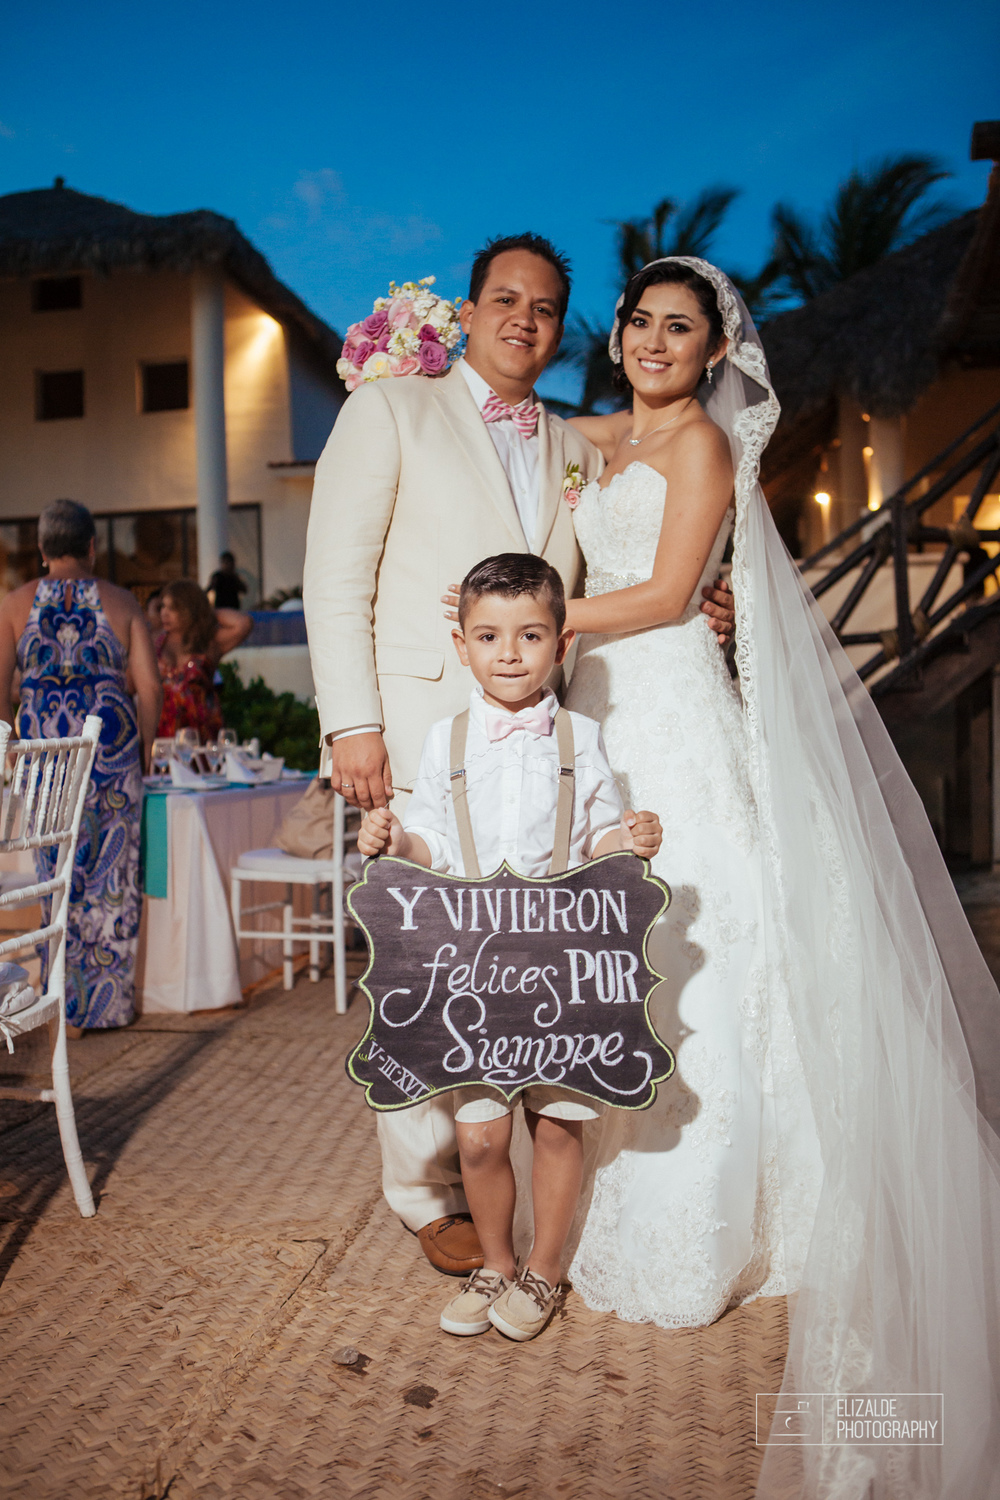 Pay and Ferran_Acapulco_Destination Wedding_Elizalde Photography-106.jpg